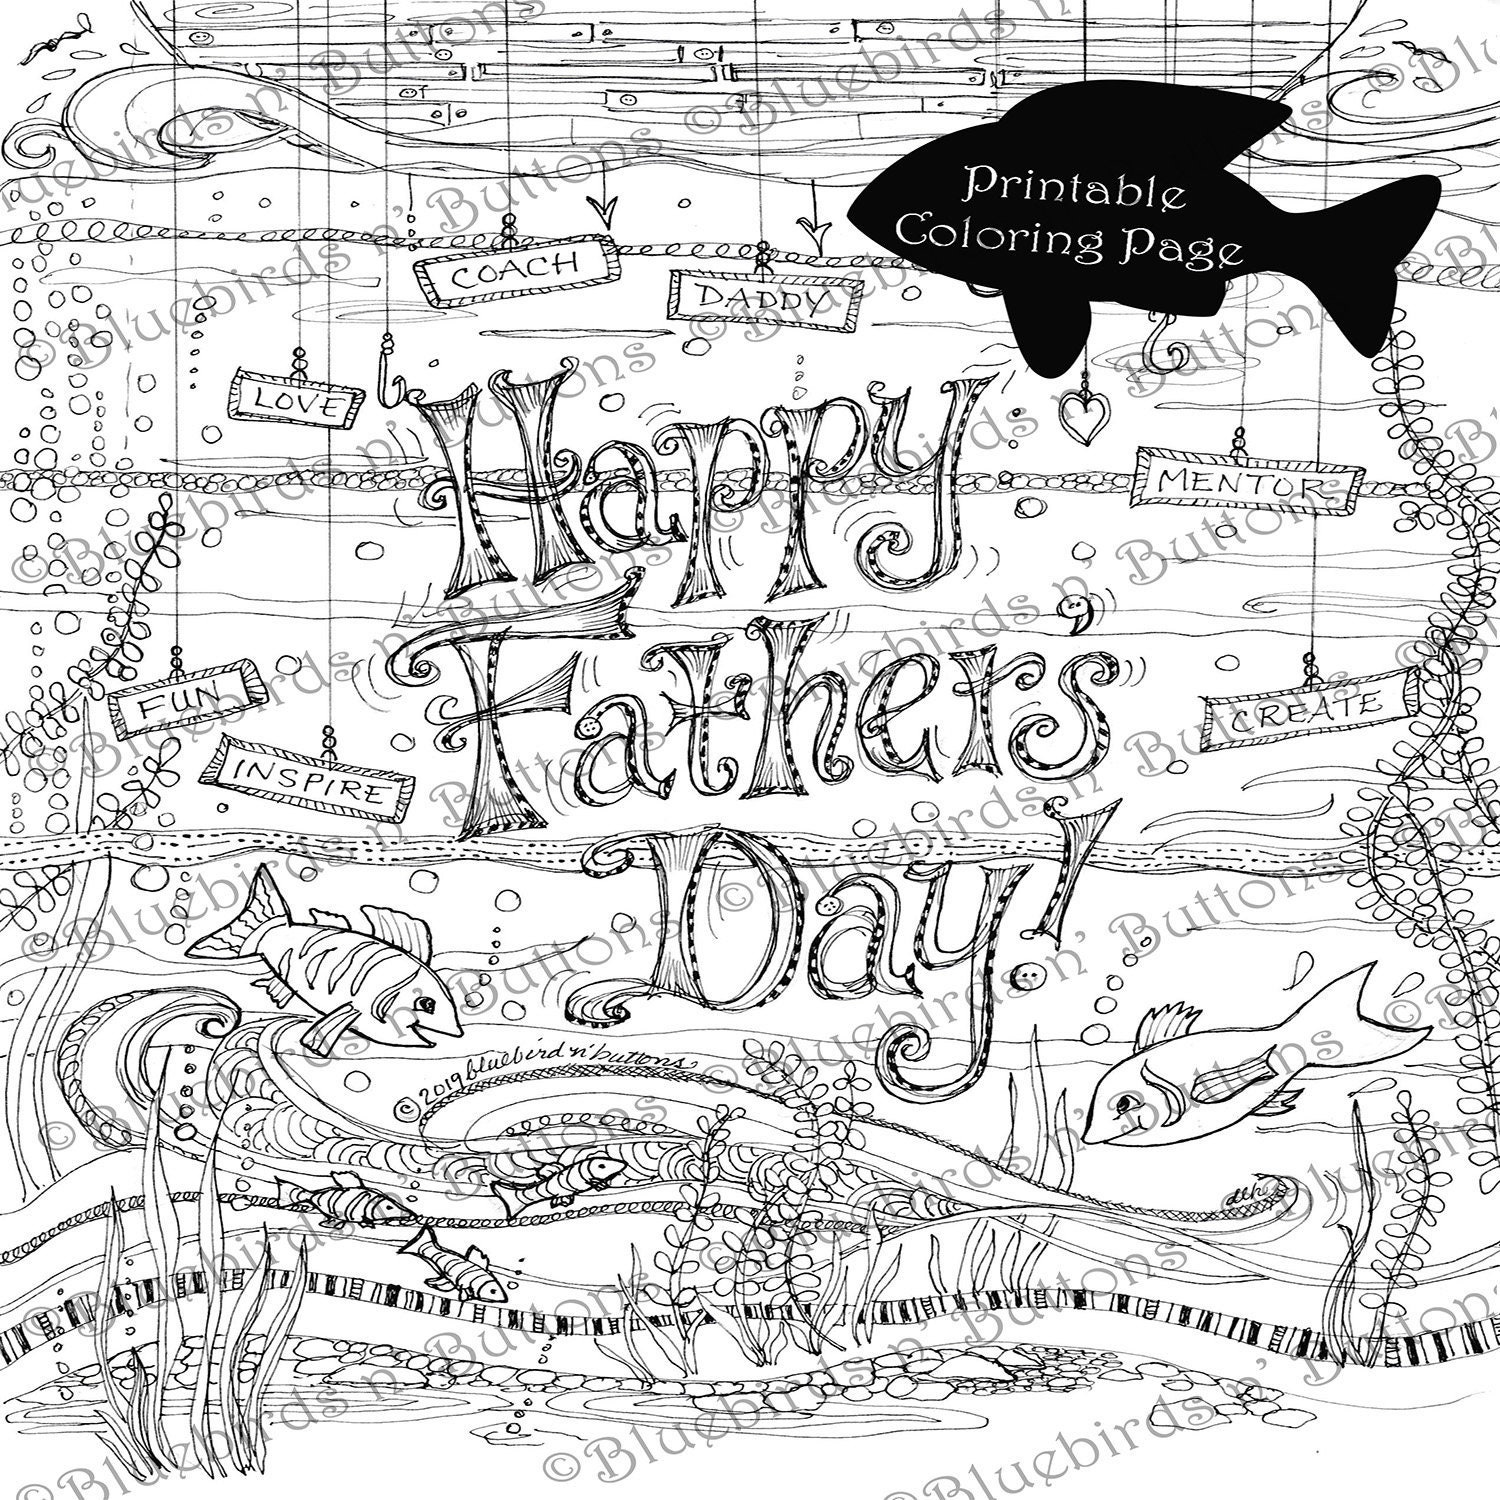 Coloring page printable coloring page june coloring fathers day page download adult coloring page kids coloring pages fun